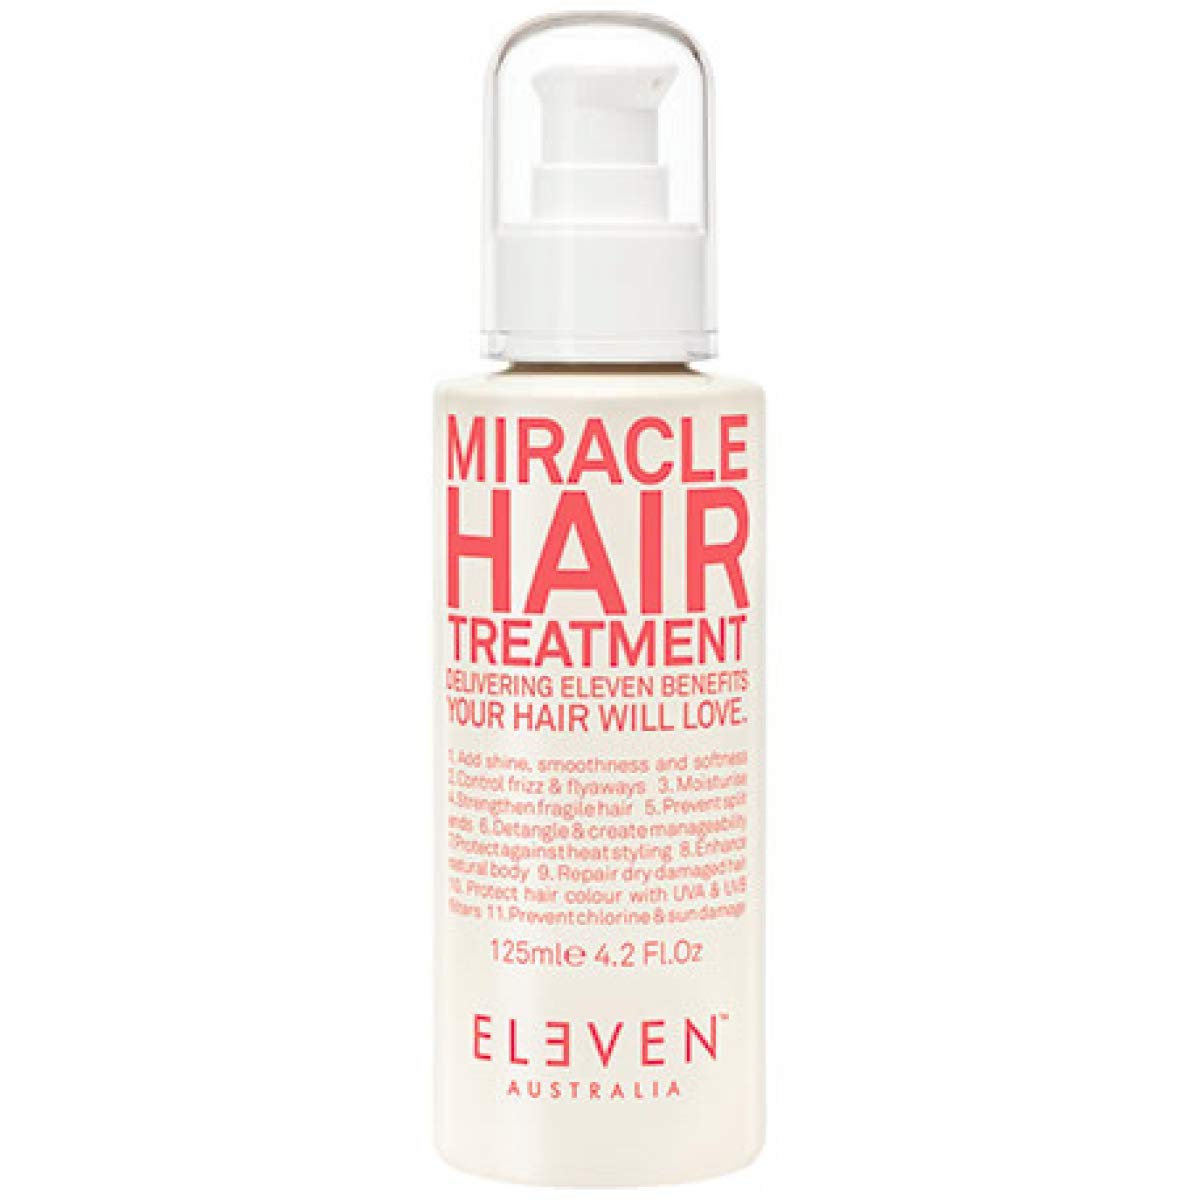 ELEVEN AUSTRALIA MIRACLE HAIR TREATMENT - 125 mL / 4.2 oz